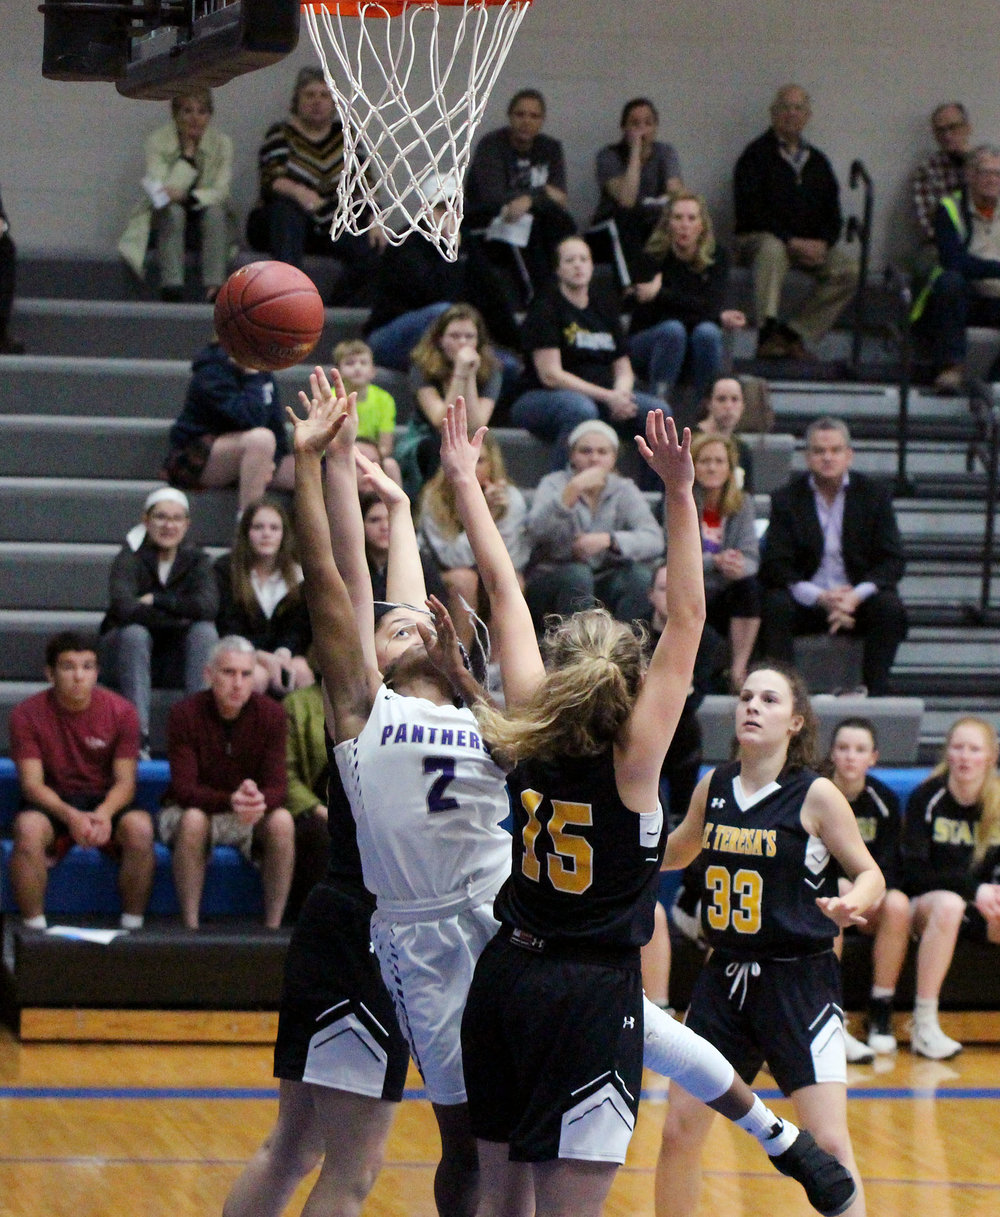 CODY THORN/Citizen photo Park Hill South guard Dymeria Guillory (2) goes up for a basket between two St. Teresa's Academy defenders, including Clare Herrington (15) during the Class 5 District 14 semifinal game on Wednesday, Feb. 28 at Rockhurst High School in Kansas City.